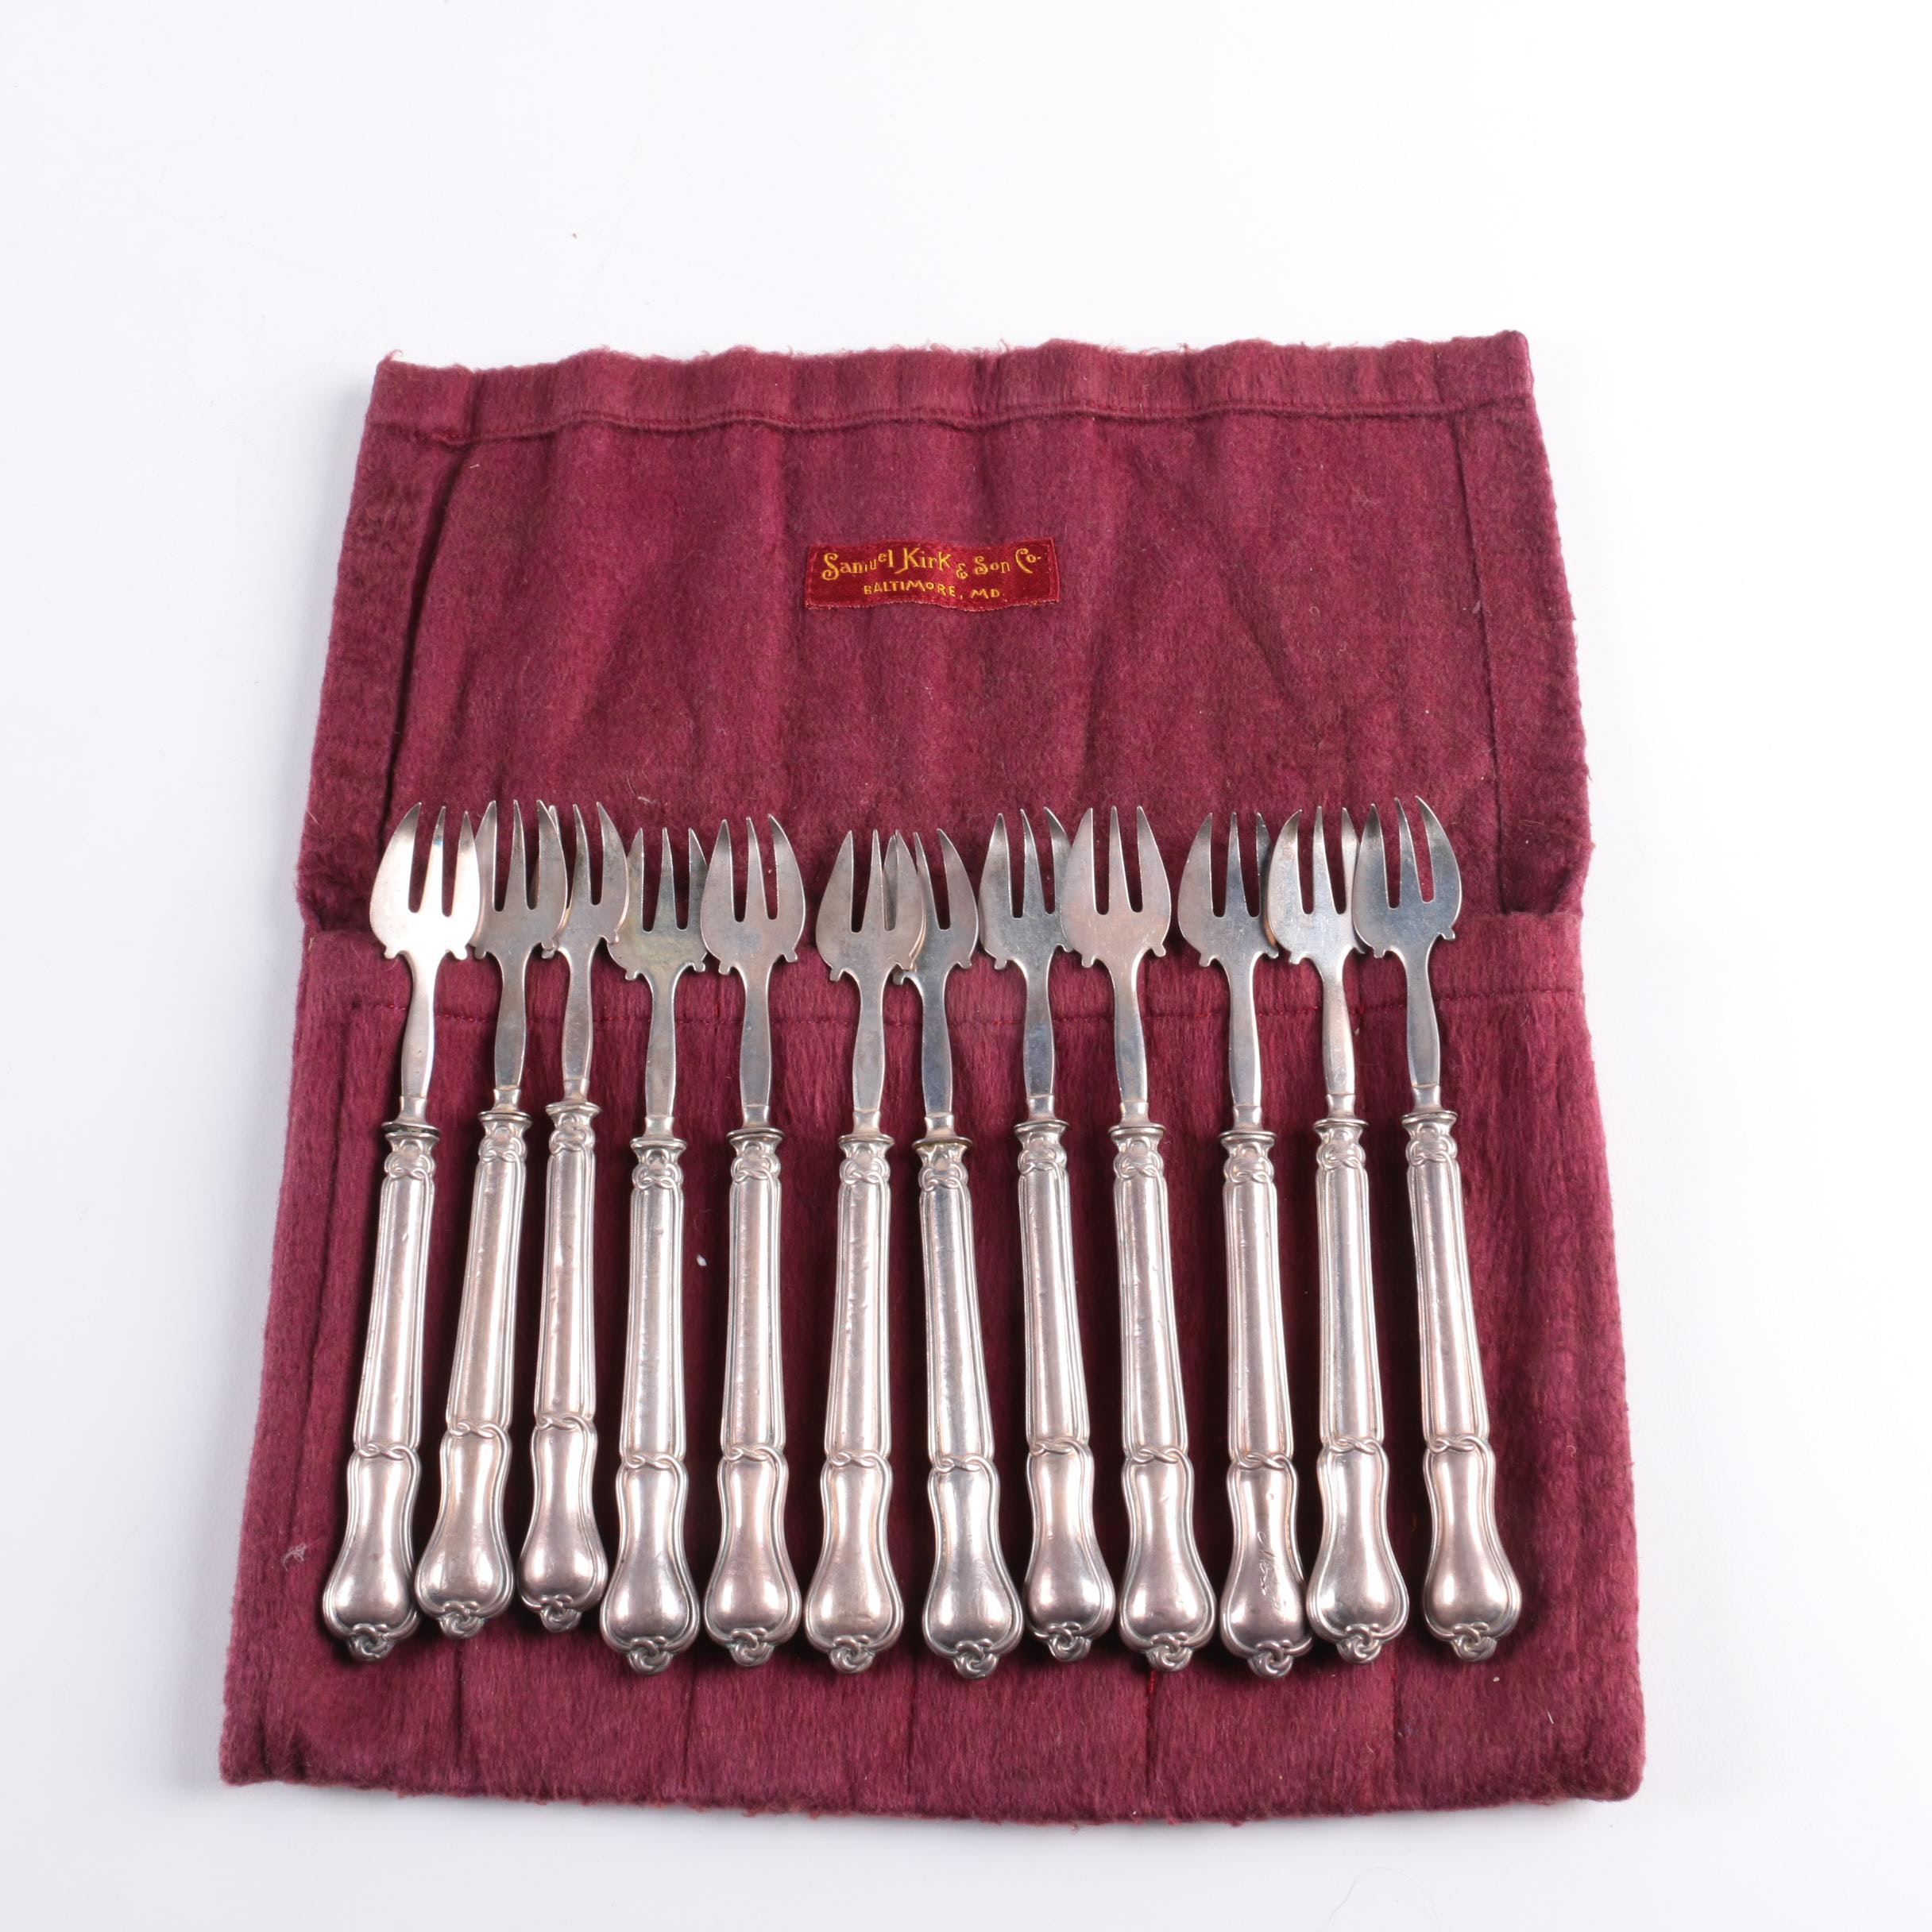 Set of Sterling Handled Three-Tine Forks with Cloth Case